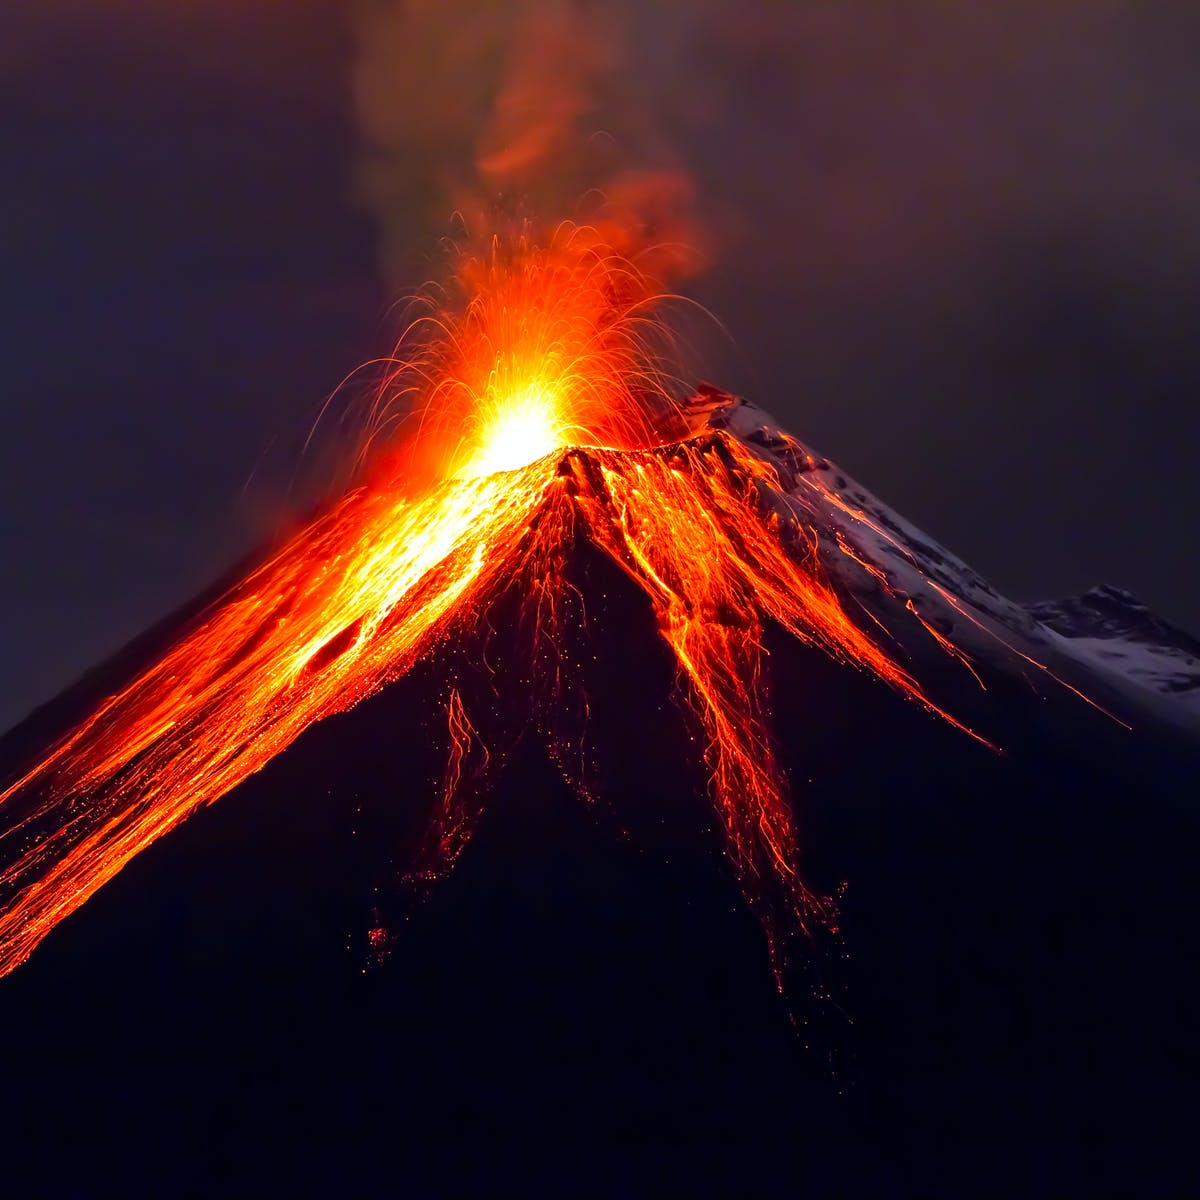 Why can't we predict when a volcano will erupt?